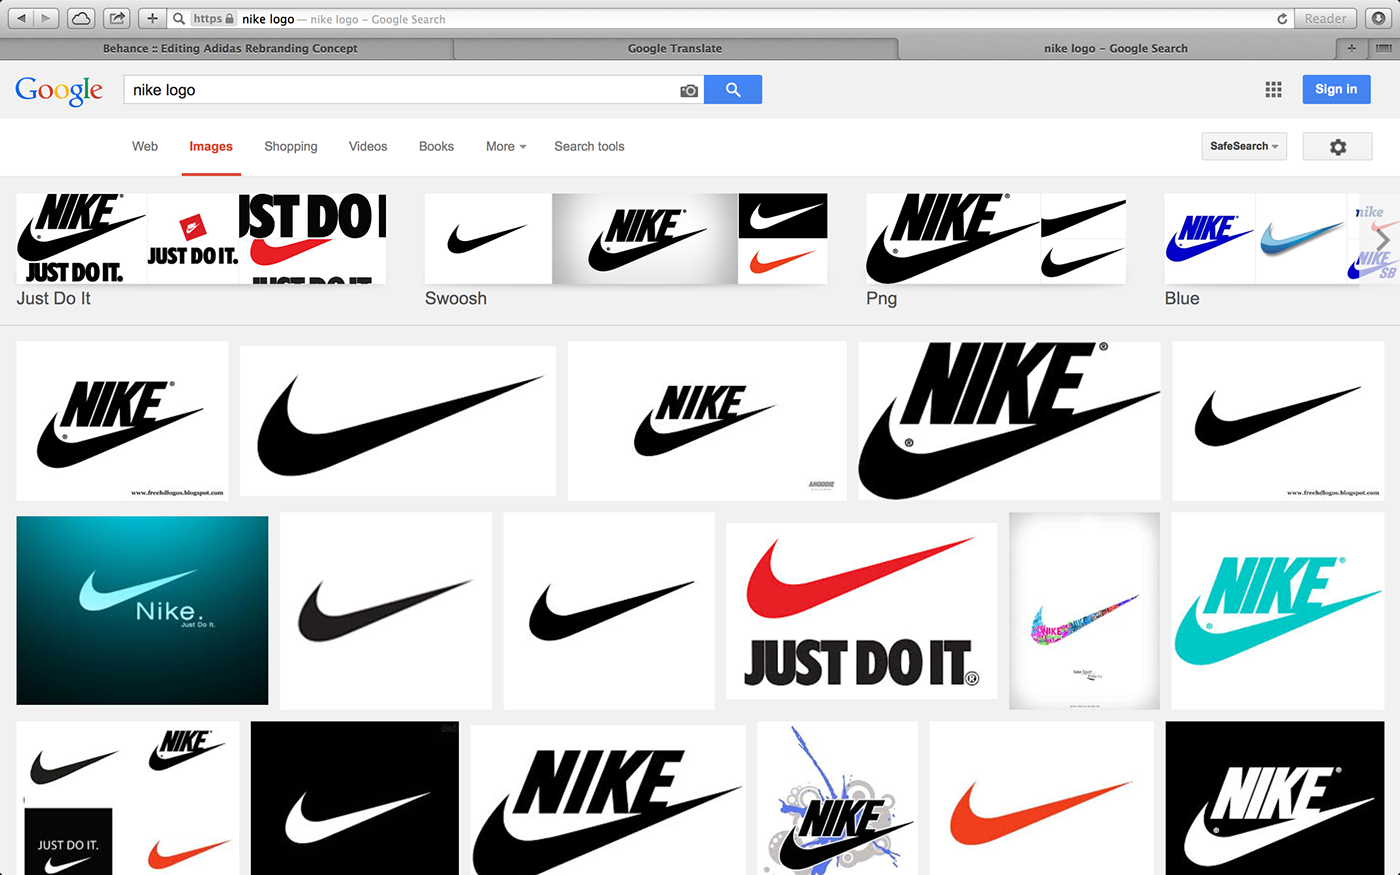 Adidas brand design study on behance results of the search query nike logo in google only one image result is not the logo of nike the brand symbol is correct though buycottarizona Choice Image